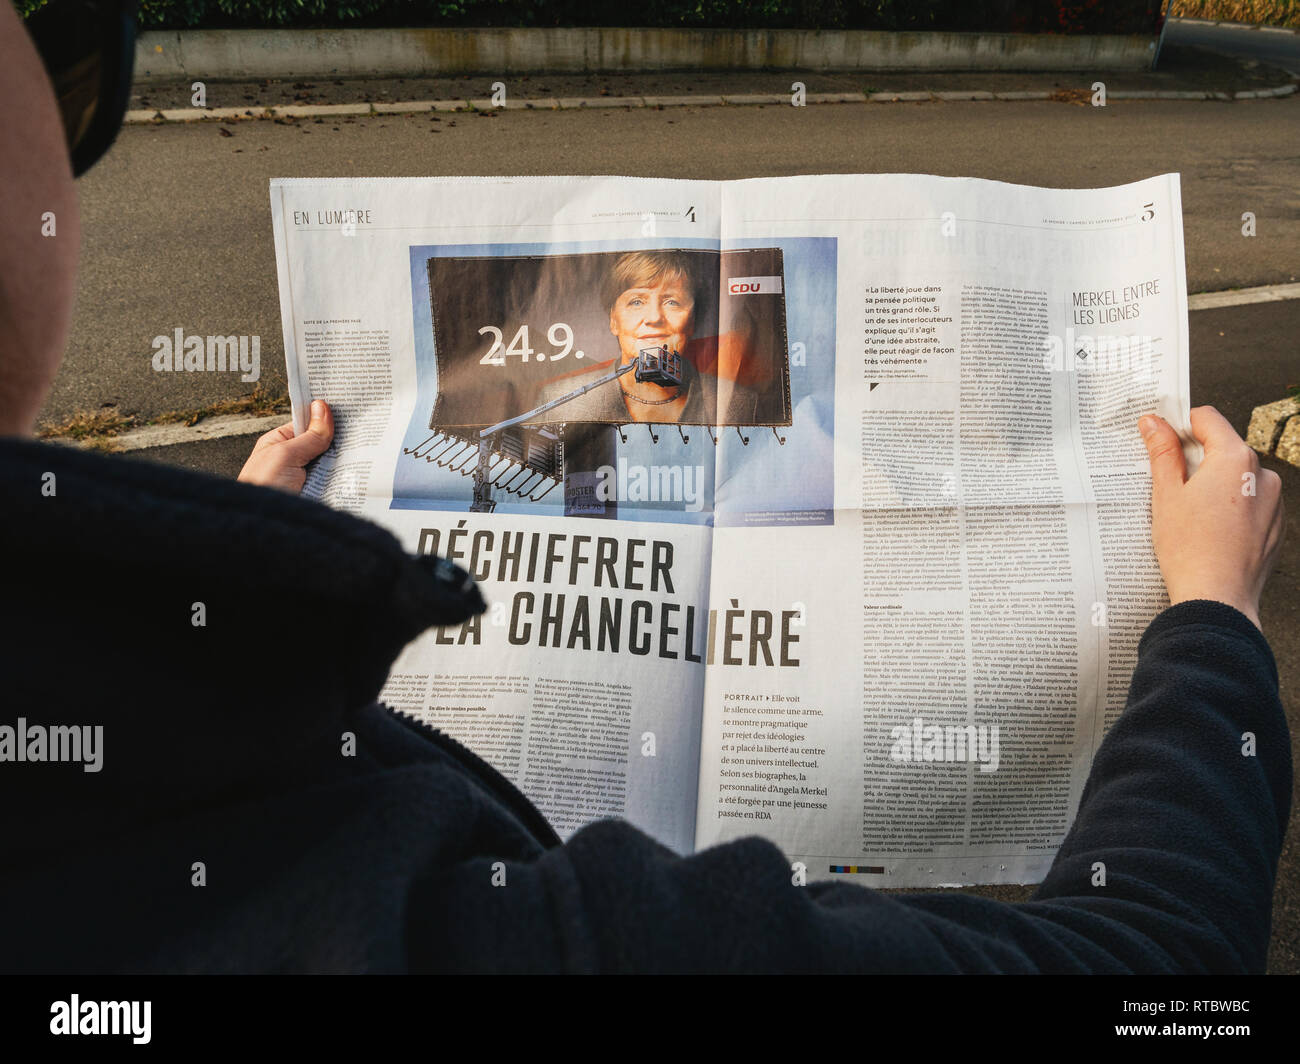 PARIS, FRANCE - SEP 24, 2017: Side view of woman reading latest newspaper Le Monde with article investigation about Angela Merkel before the election in Germany for the Chancellor of Germany, the head of the federal government - Stock Image